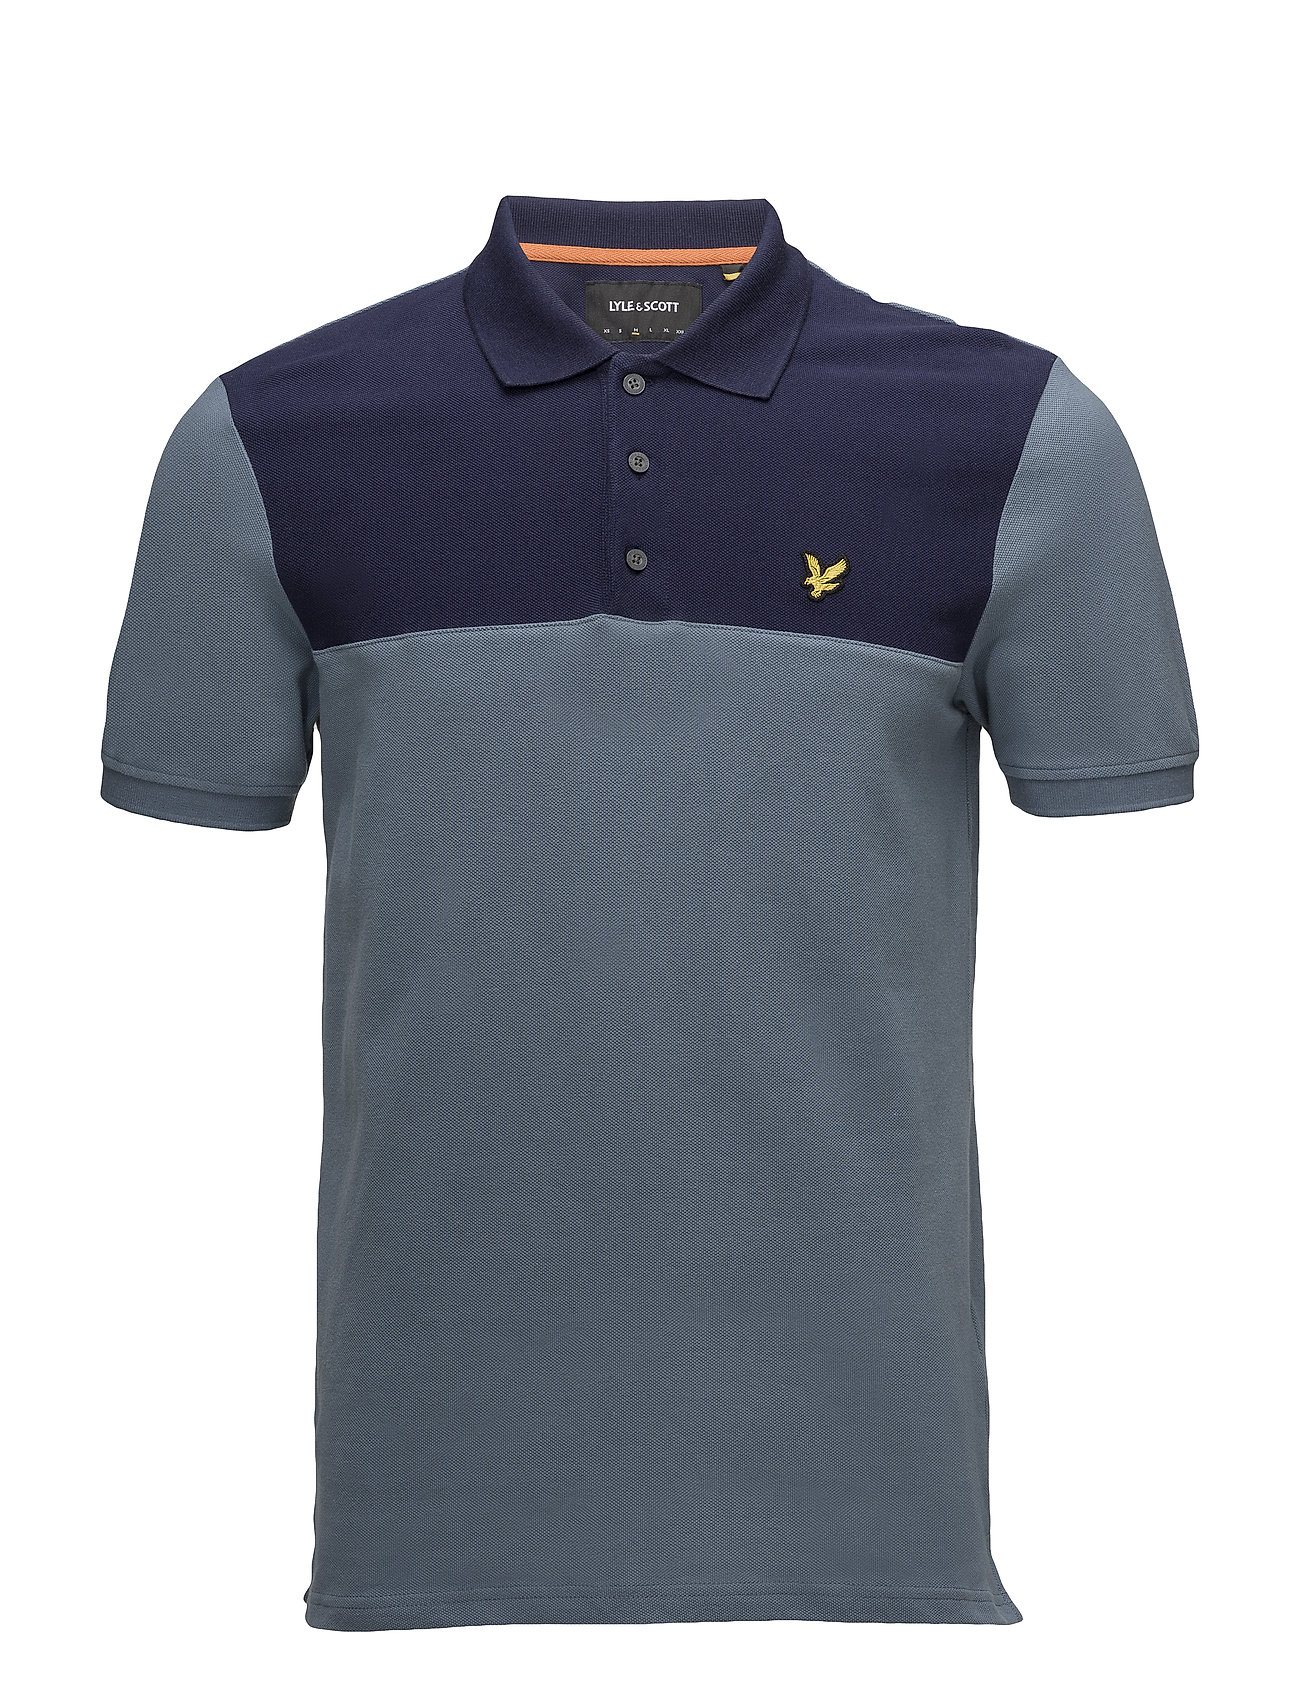 Lyle & Scott Yoke Polo Shirt Ögrönlar